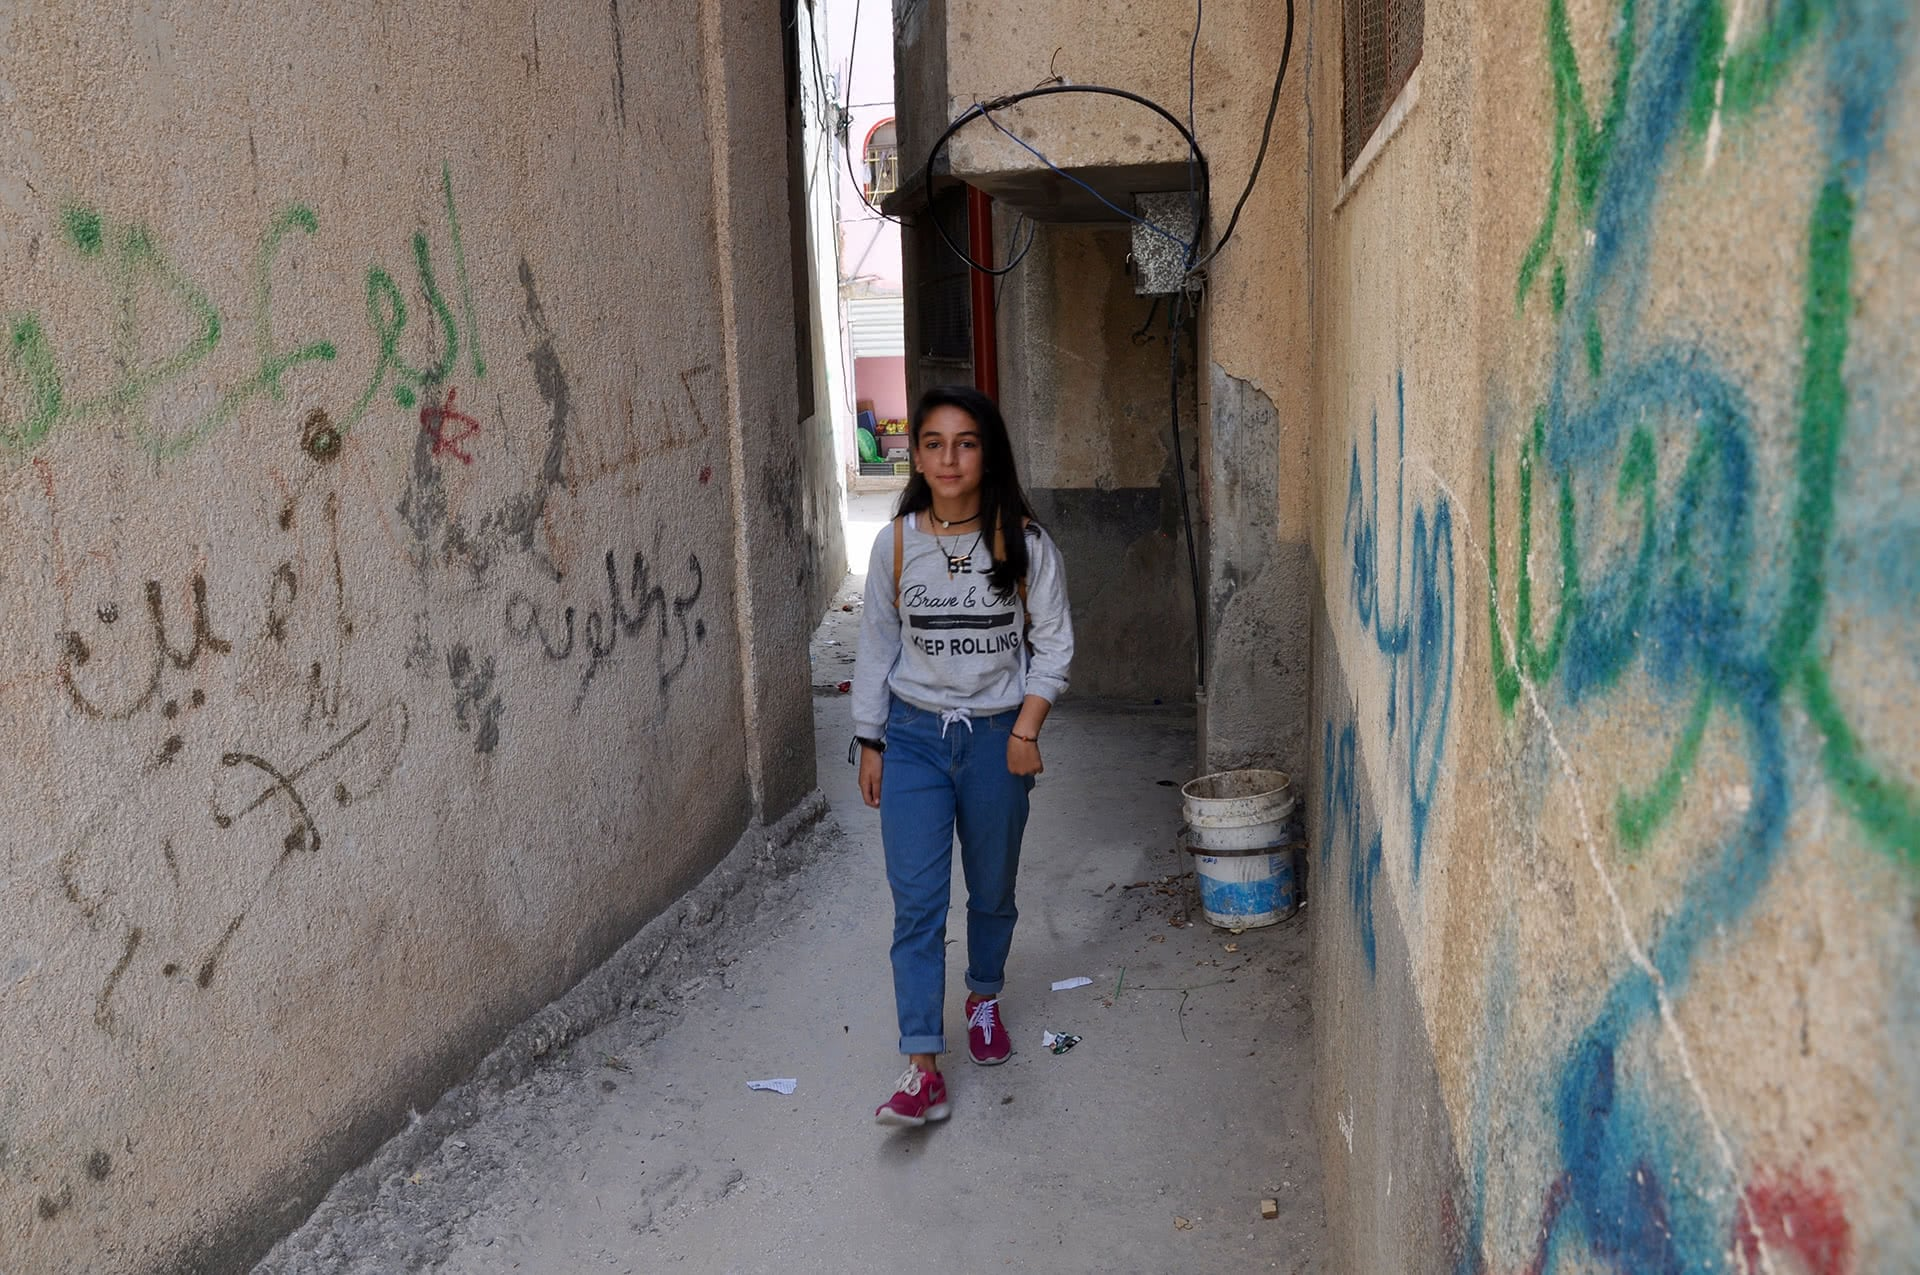 Sara Einajeh, 14, walks through streets she said are unsafe for playing. (Photo: DCIP / Emily Thomas. )